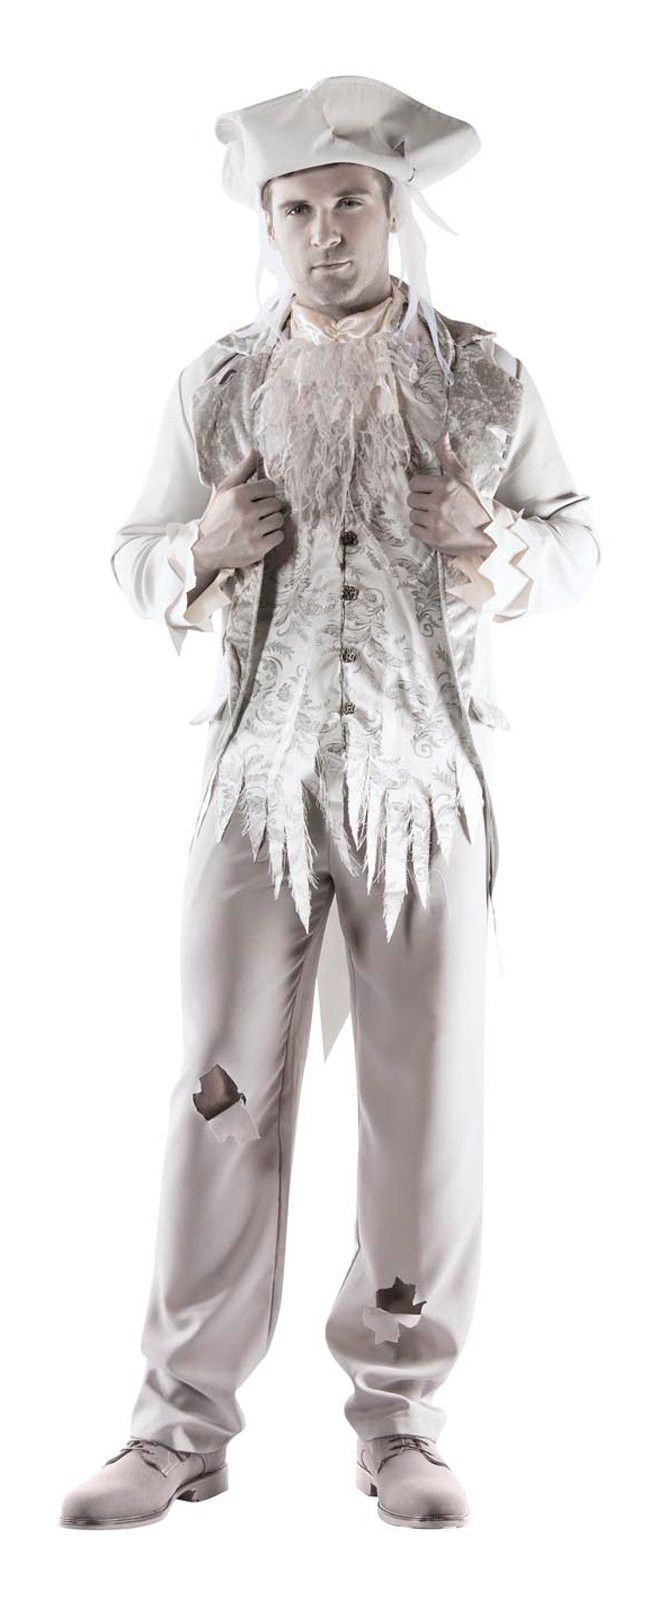 Ghostly Gent Adult Costume  sc 1 st  Pinterest & Ghostly Gent Adult Costume | Products | Pinterest